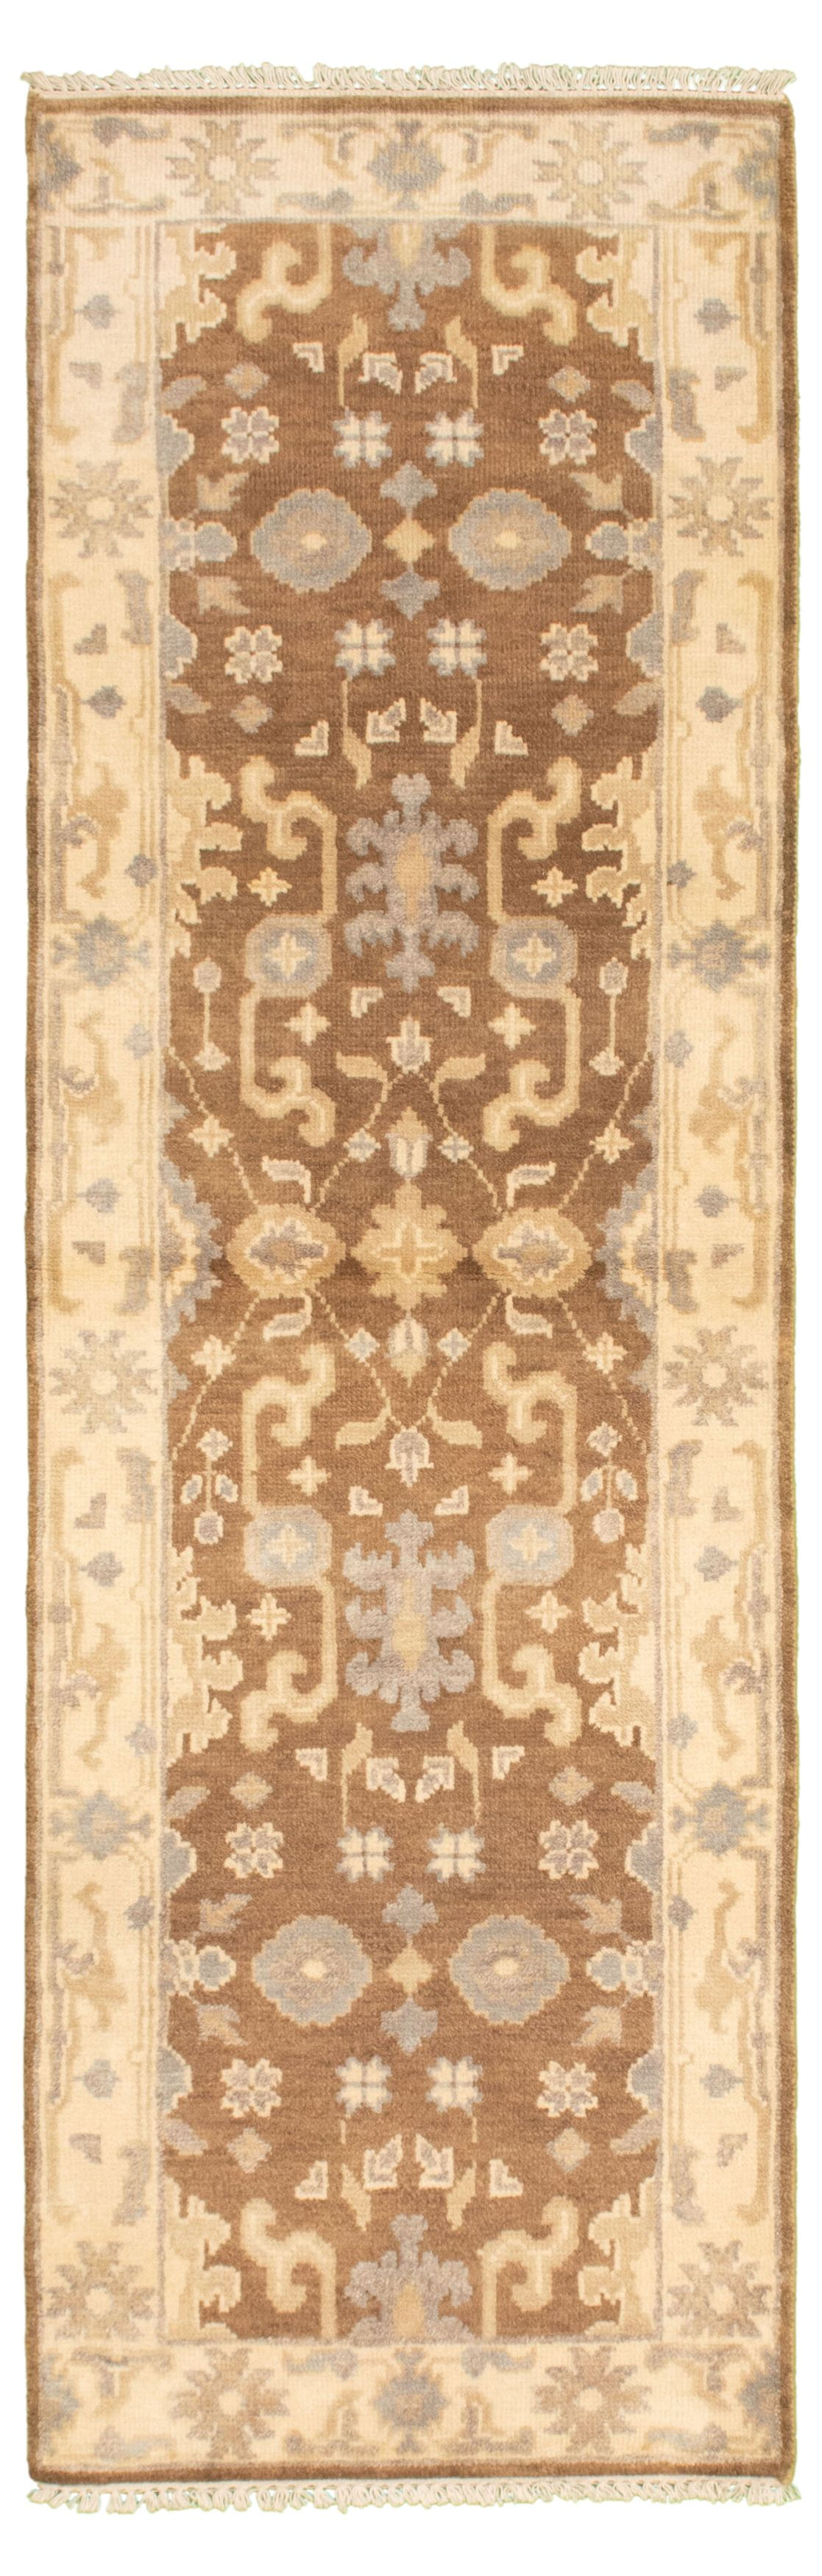 """Hand-knotted Royal Ushak Brown Wool Rug 2'7"""" x 8'1"""" Size: 2'7"""" x 8'1"""""""